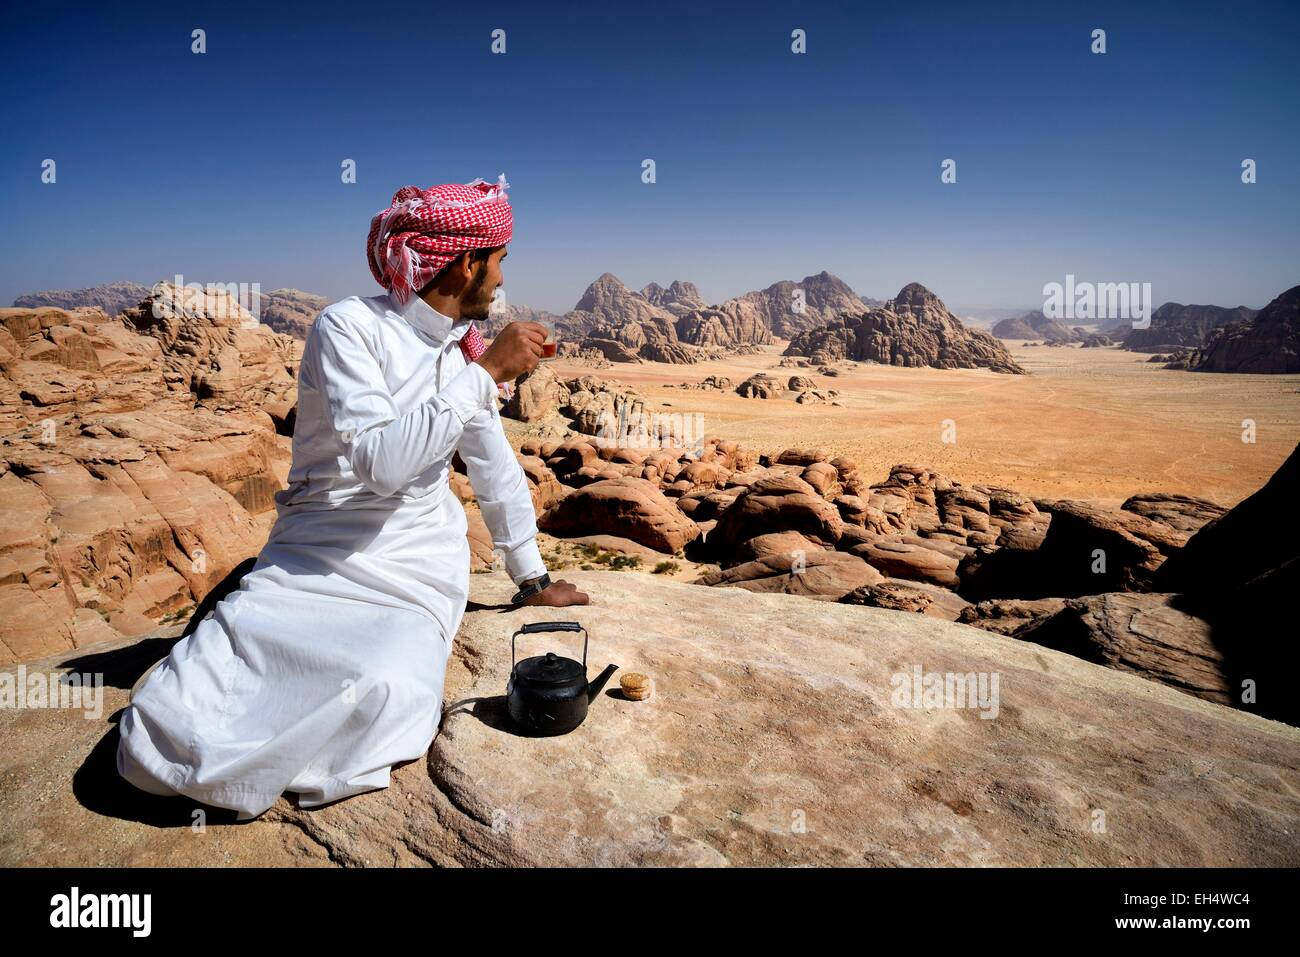 Jordan, Wadi Rum desert, protected area listed as World Heritage by UNESCO, Bedouin having a tea break at the top - Stock Image